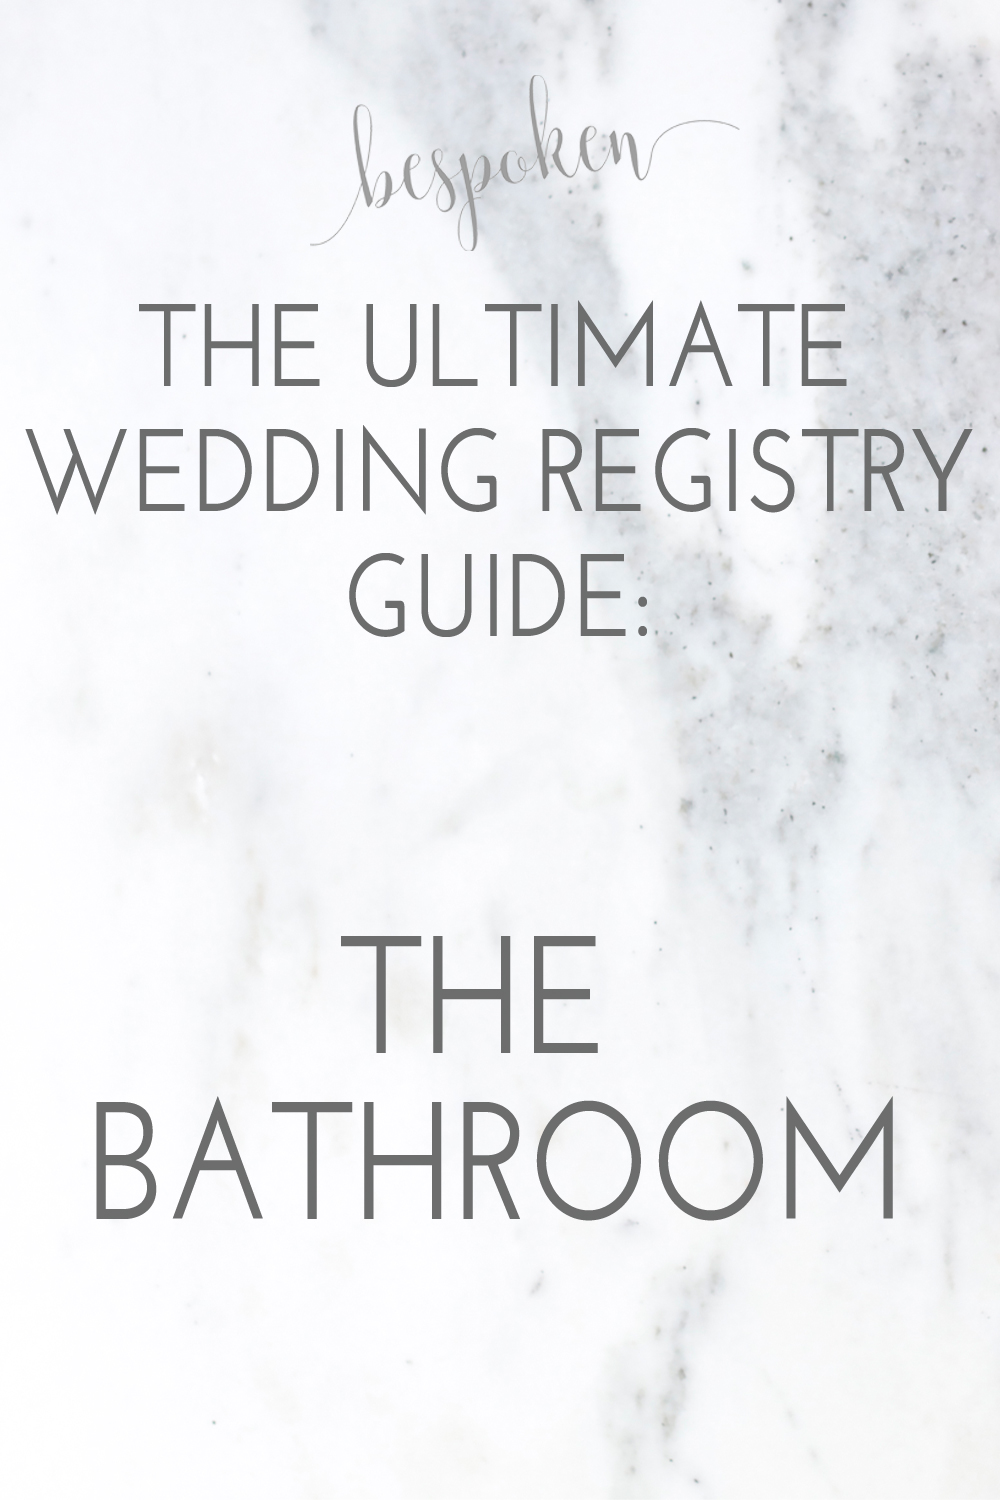 The Ultimate Wedding Registry Guide:  The Bathroom | Bespoken www.bepsokenweddings.com